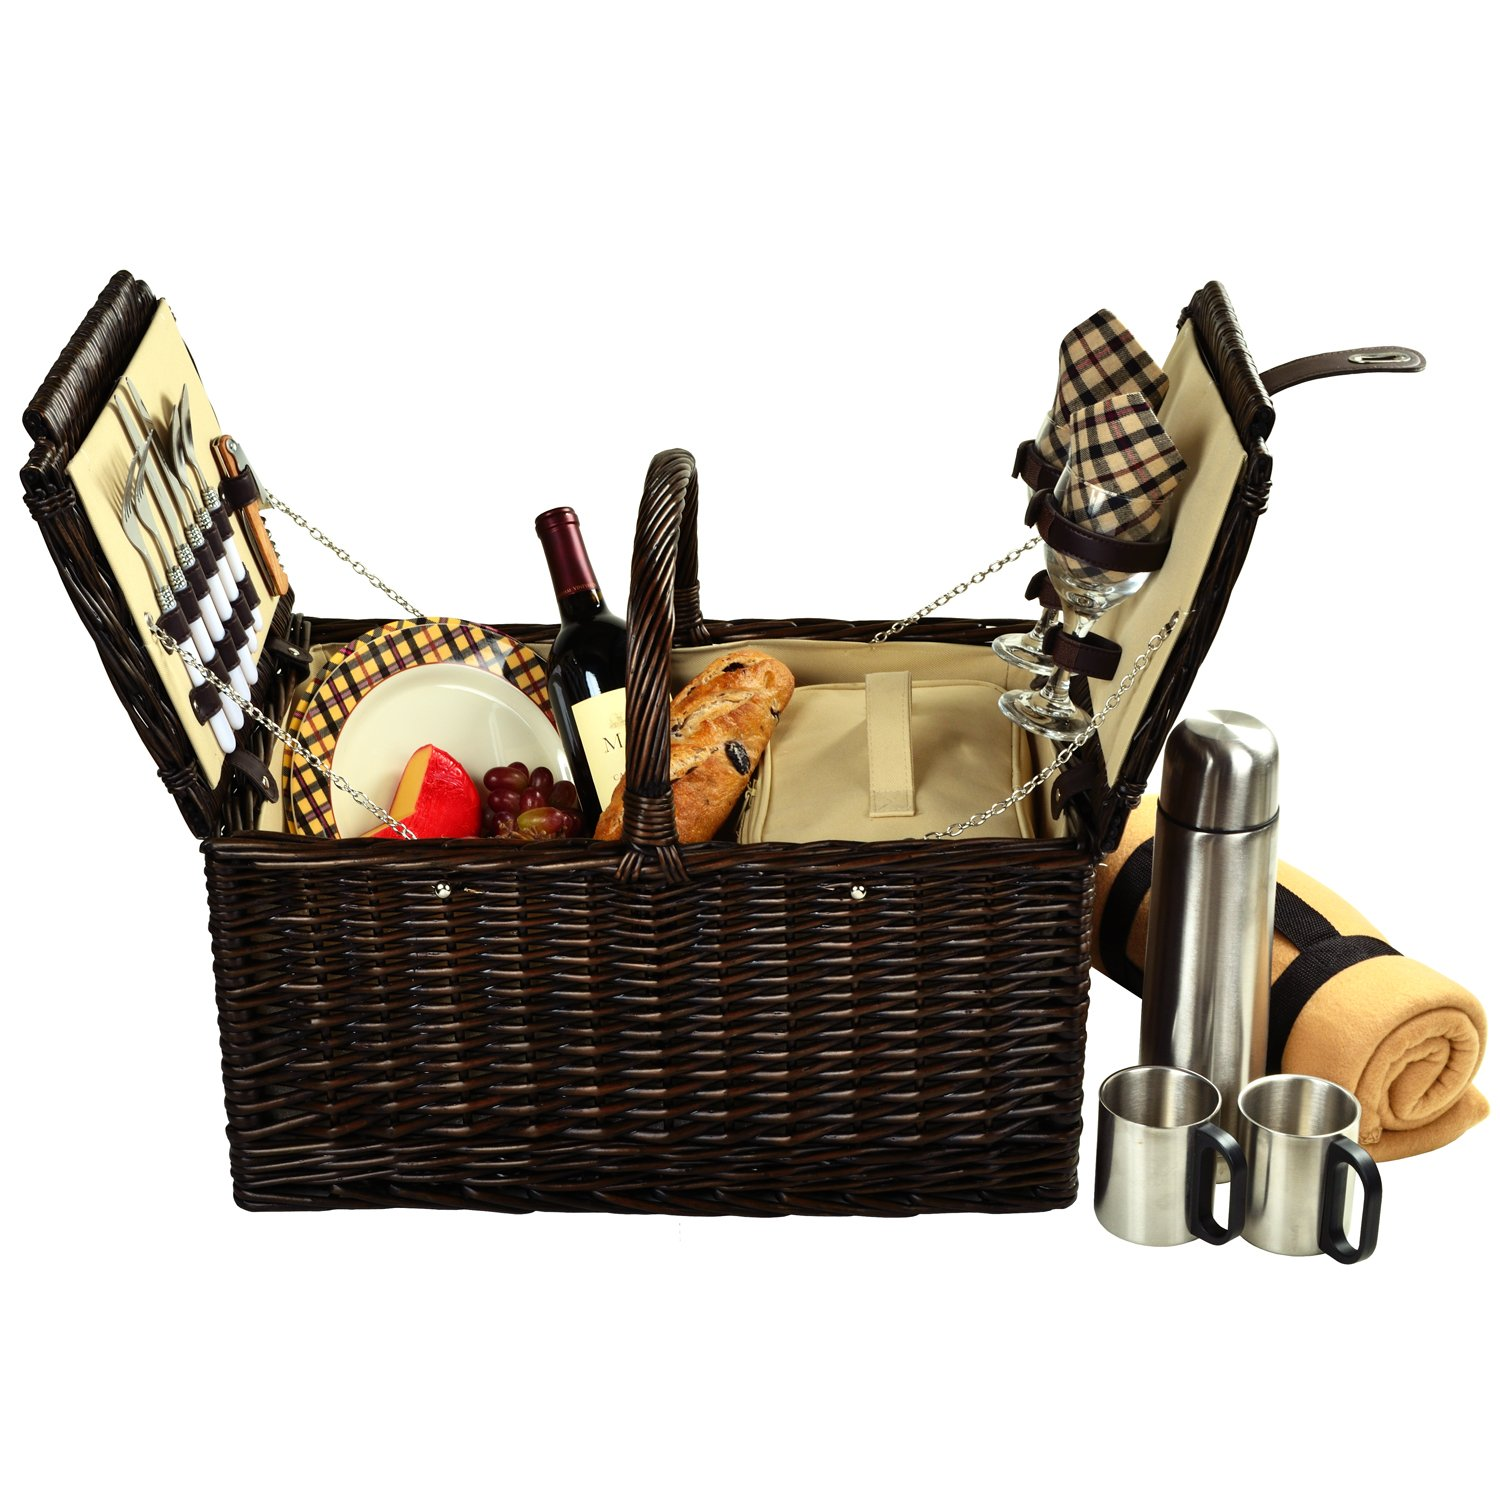 Picnic at Ascot Surrey Willow Picnic Basket with Service for 2 with Blanket and Coffee Set - London Plaid